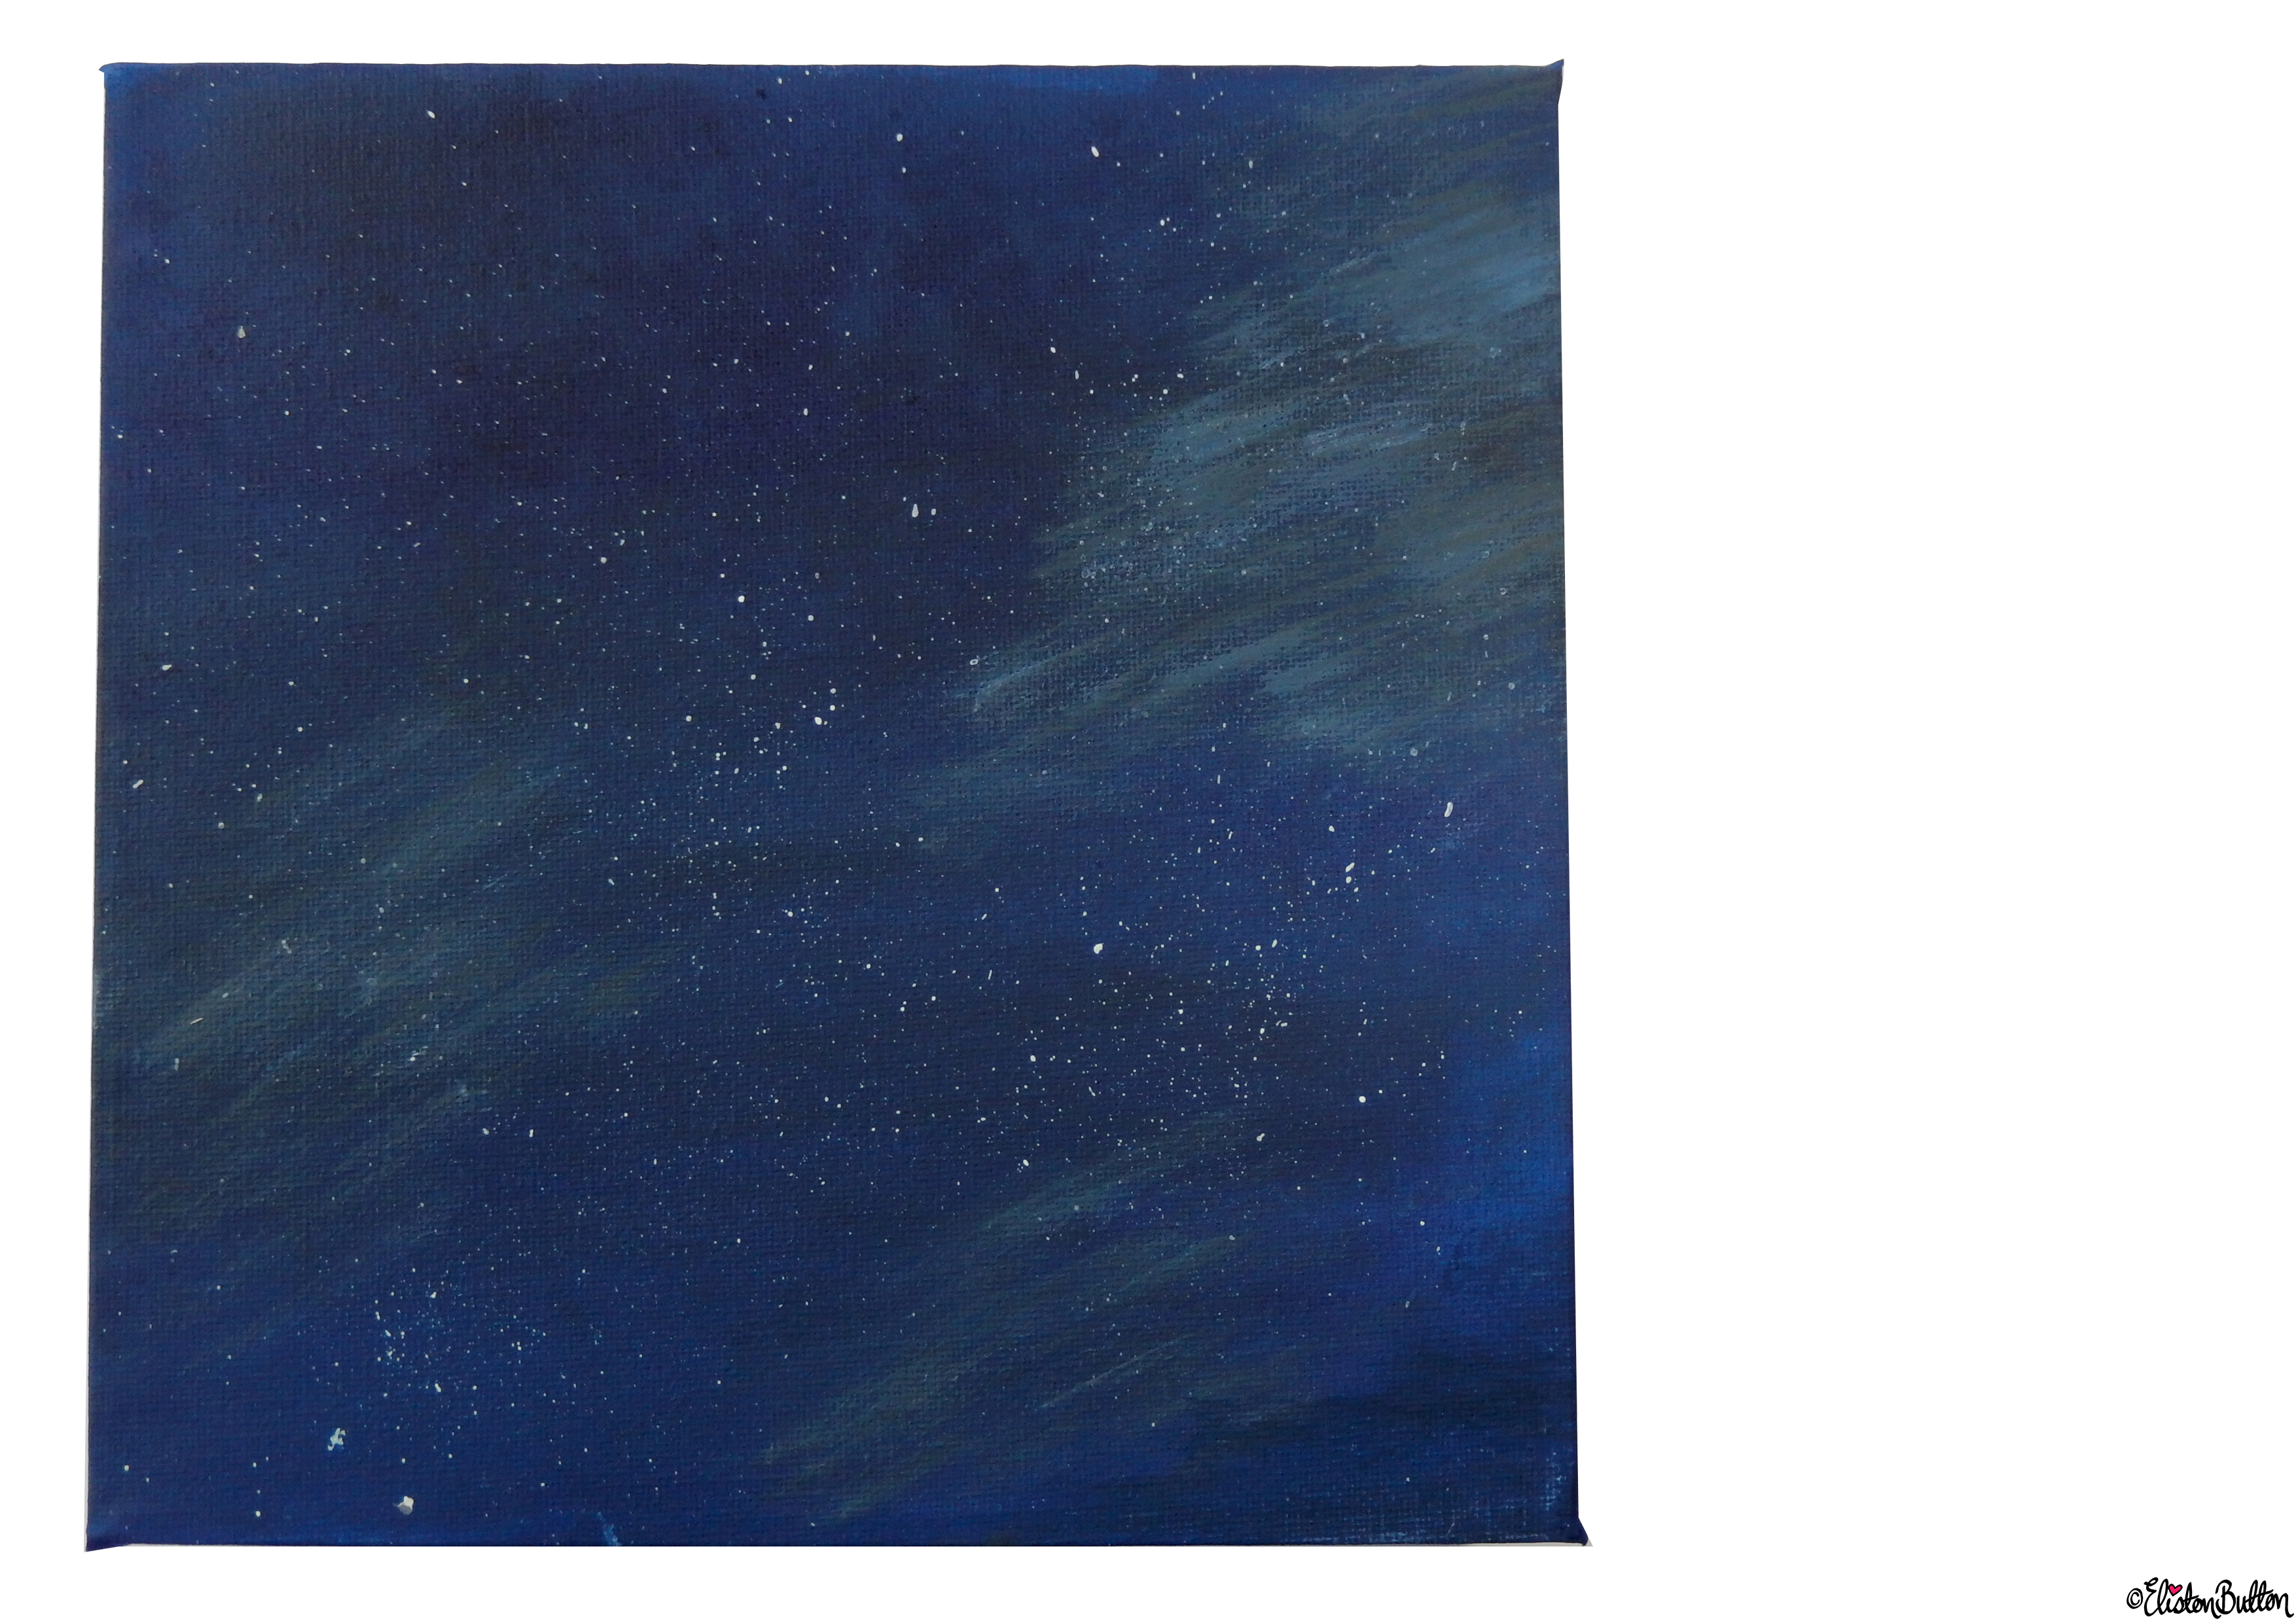 Starry Night Sky Painted Canvas - Front Full View - Create 28 - No. 16, 17 & 18 - Sea and Sky Painted Canvases at www.elistonbutton.com - Eliston Button - That Crafty Kid – Art, Design, Craft & Adventure.